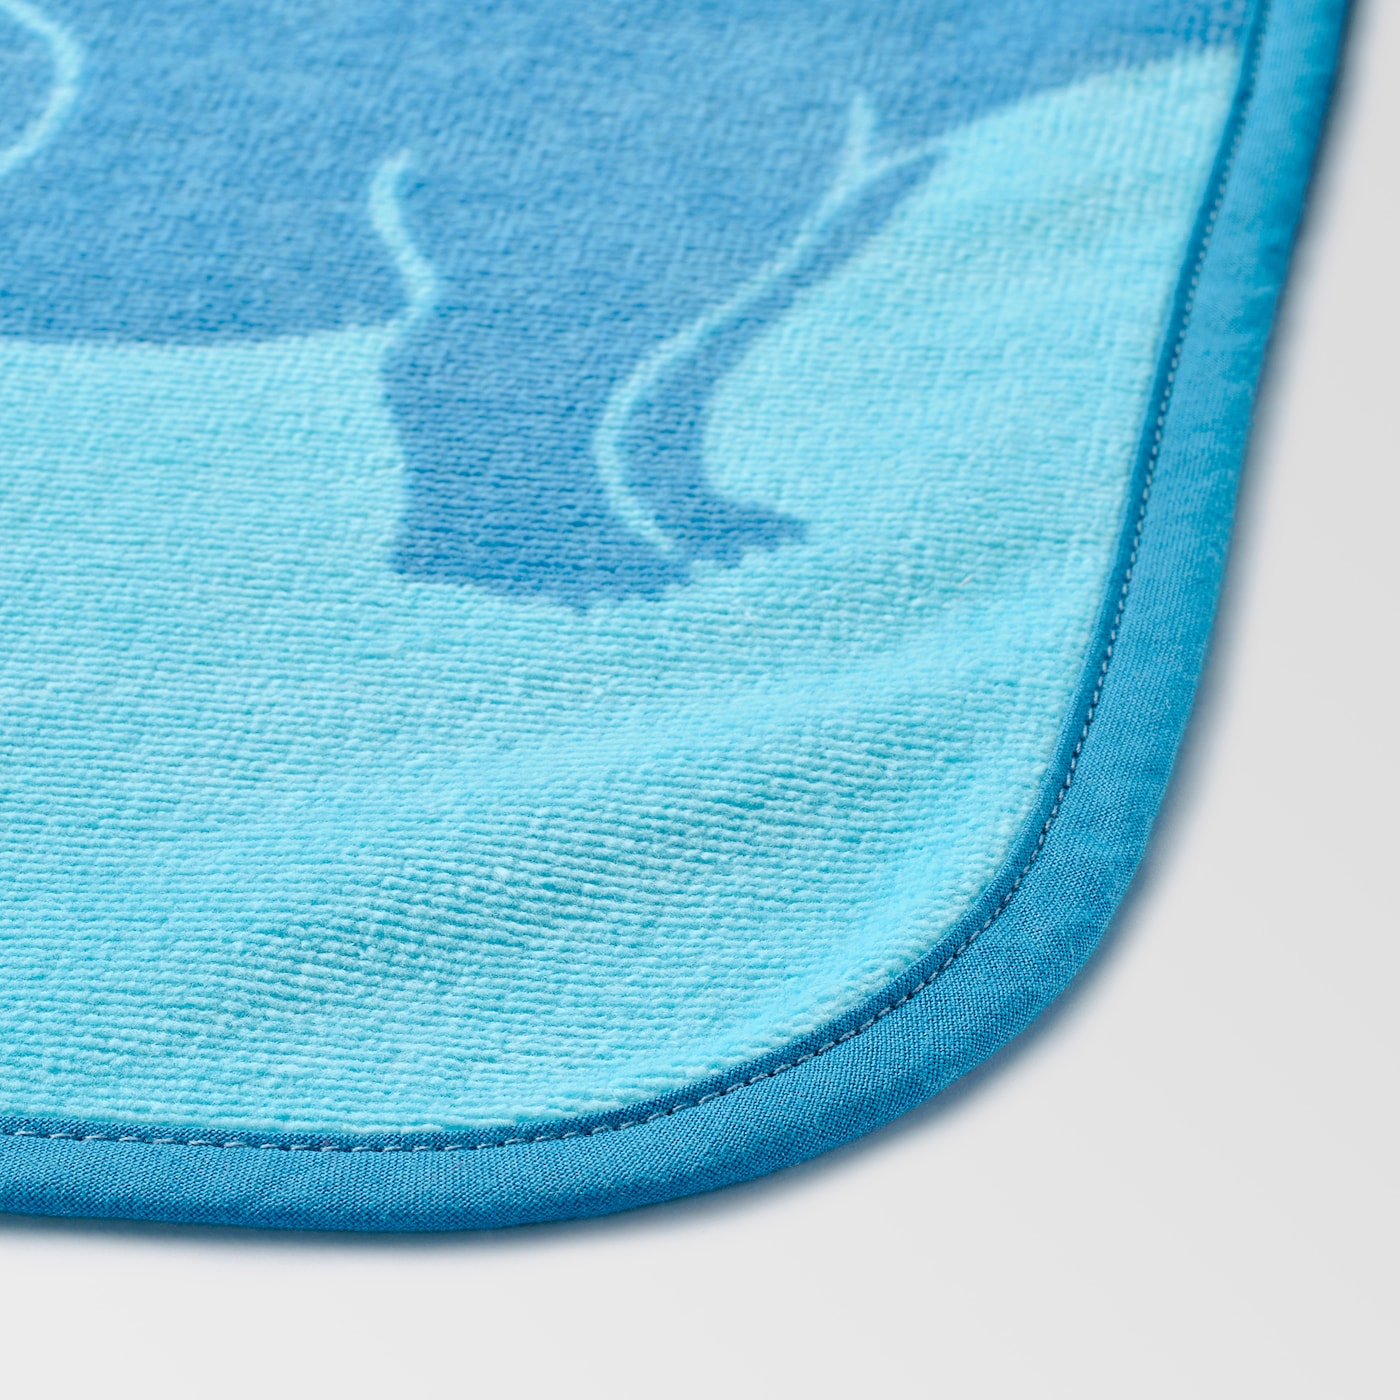 JÄTTELIK Towel with hood, dinosaur/blue, 140x70 cm